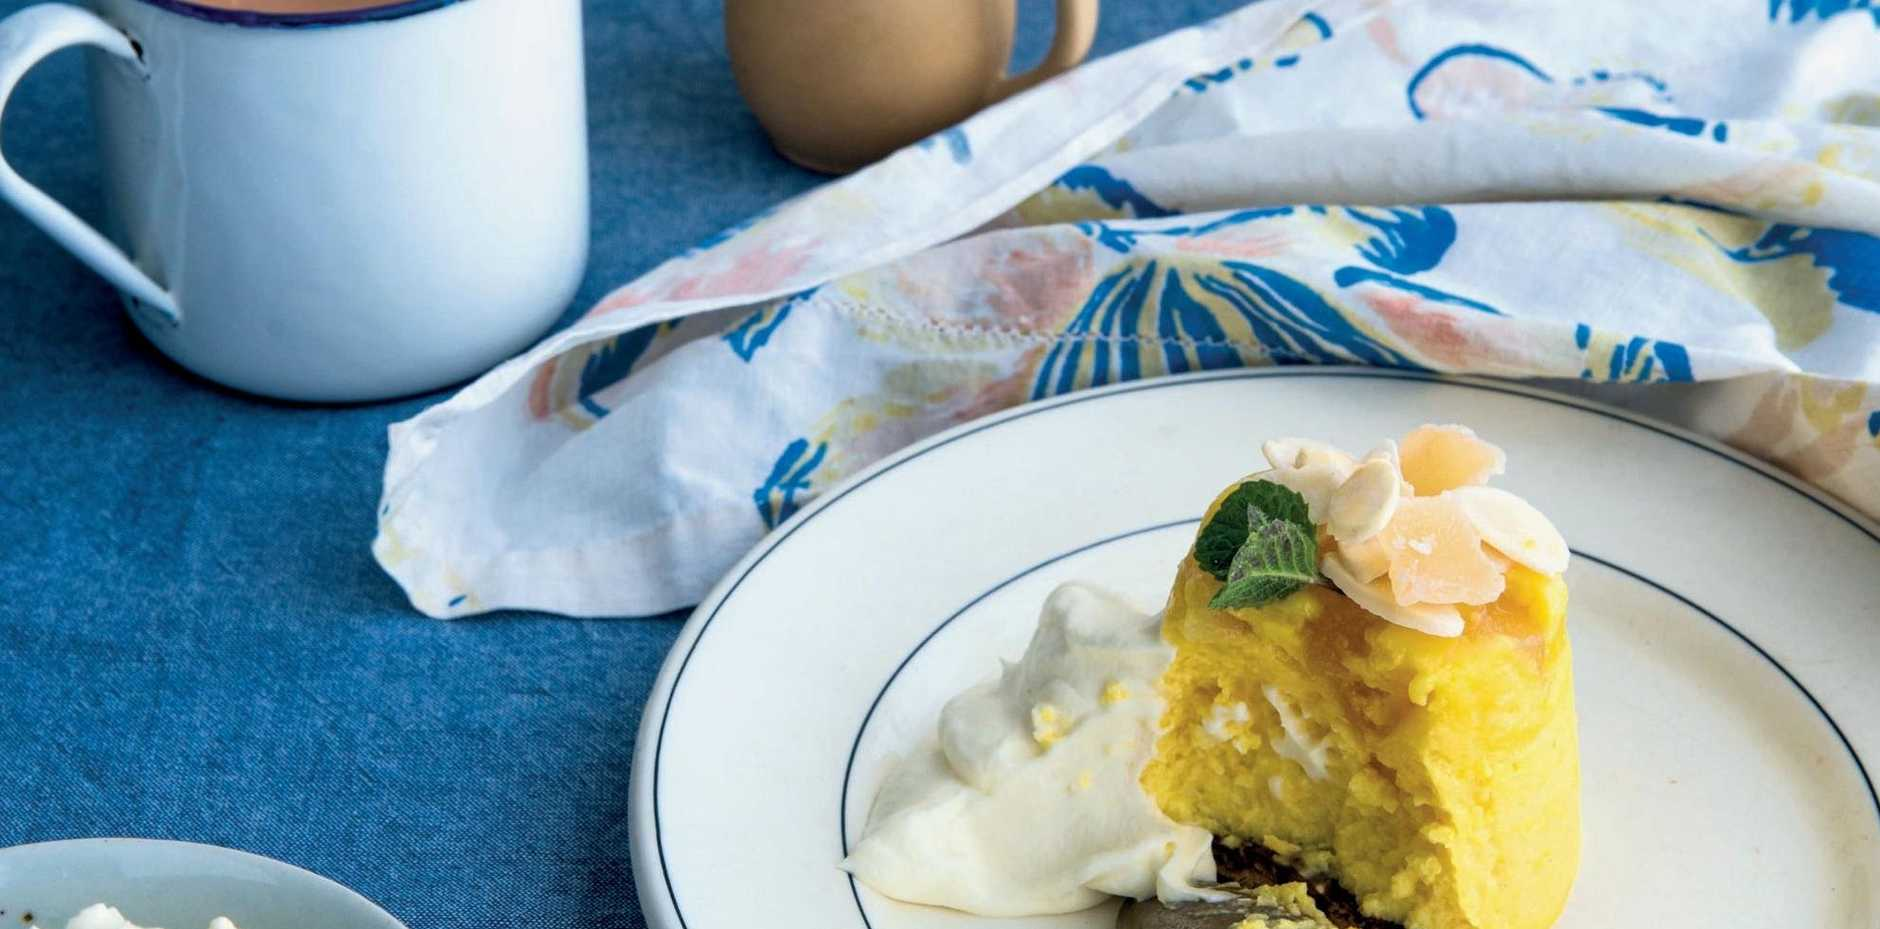 Baked lemon ricotta and ginger cheesecakes, by Sally Wise.